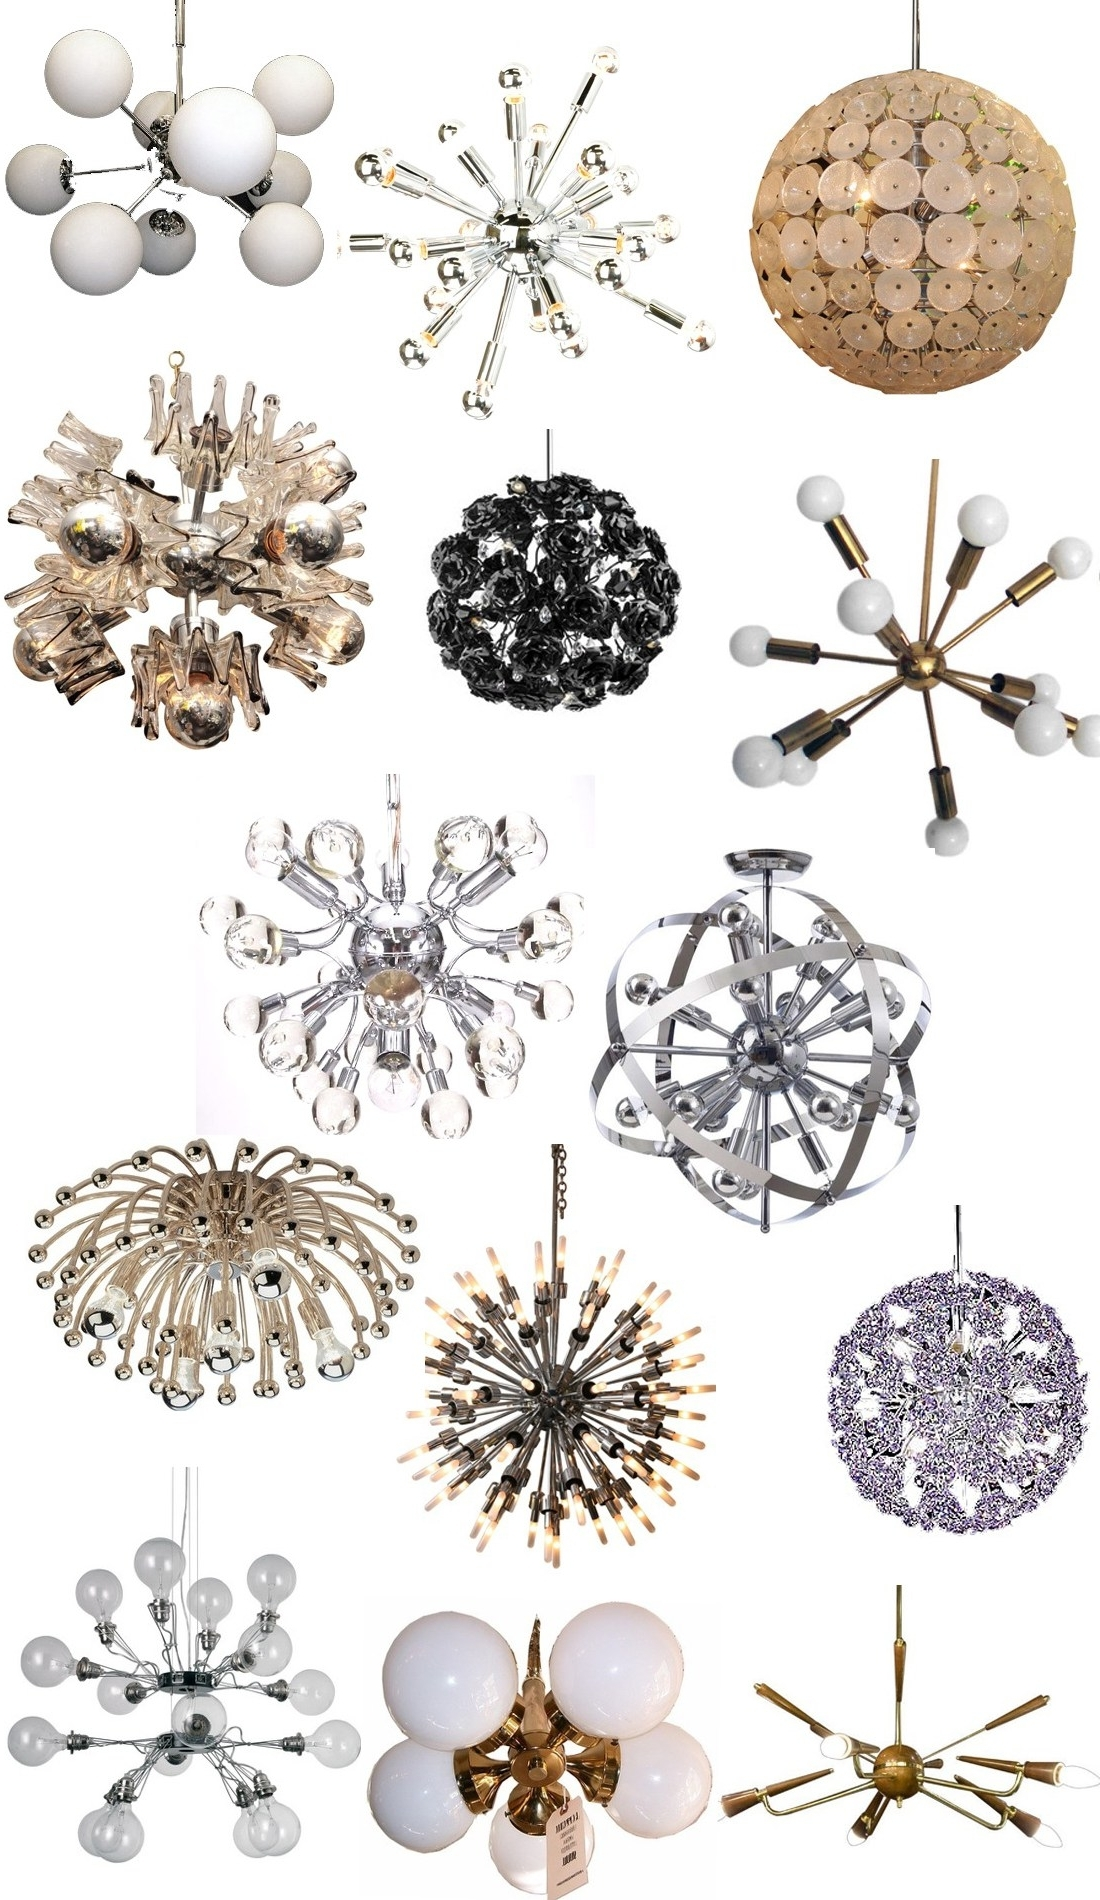 Most Recently Released Mini Sputnik Chandeliers Pertaining To Get The Look: Sputnik Chandeliers – Stylecarrot (View 11 of 15)